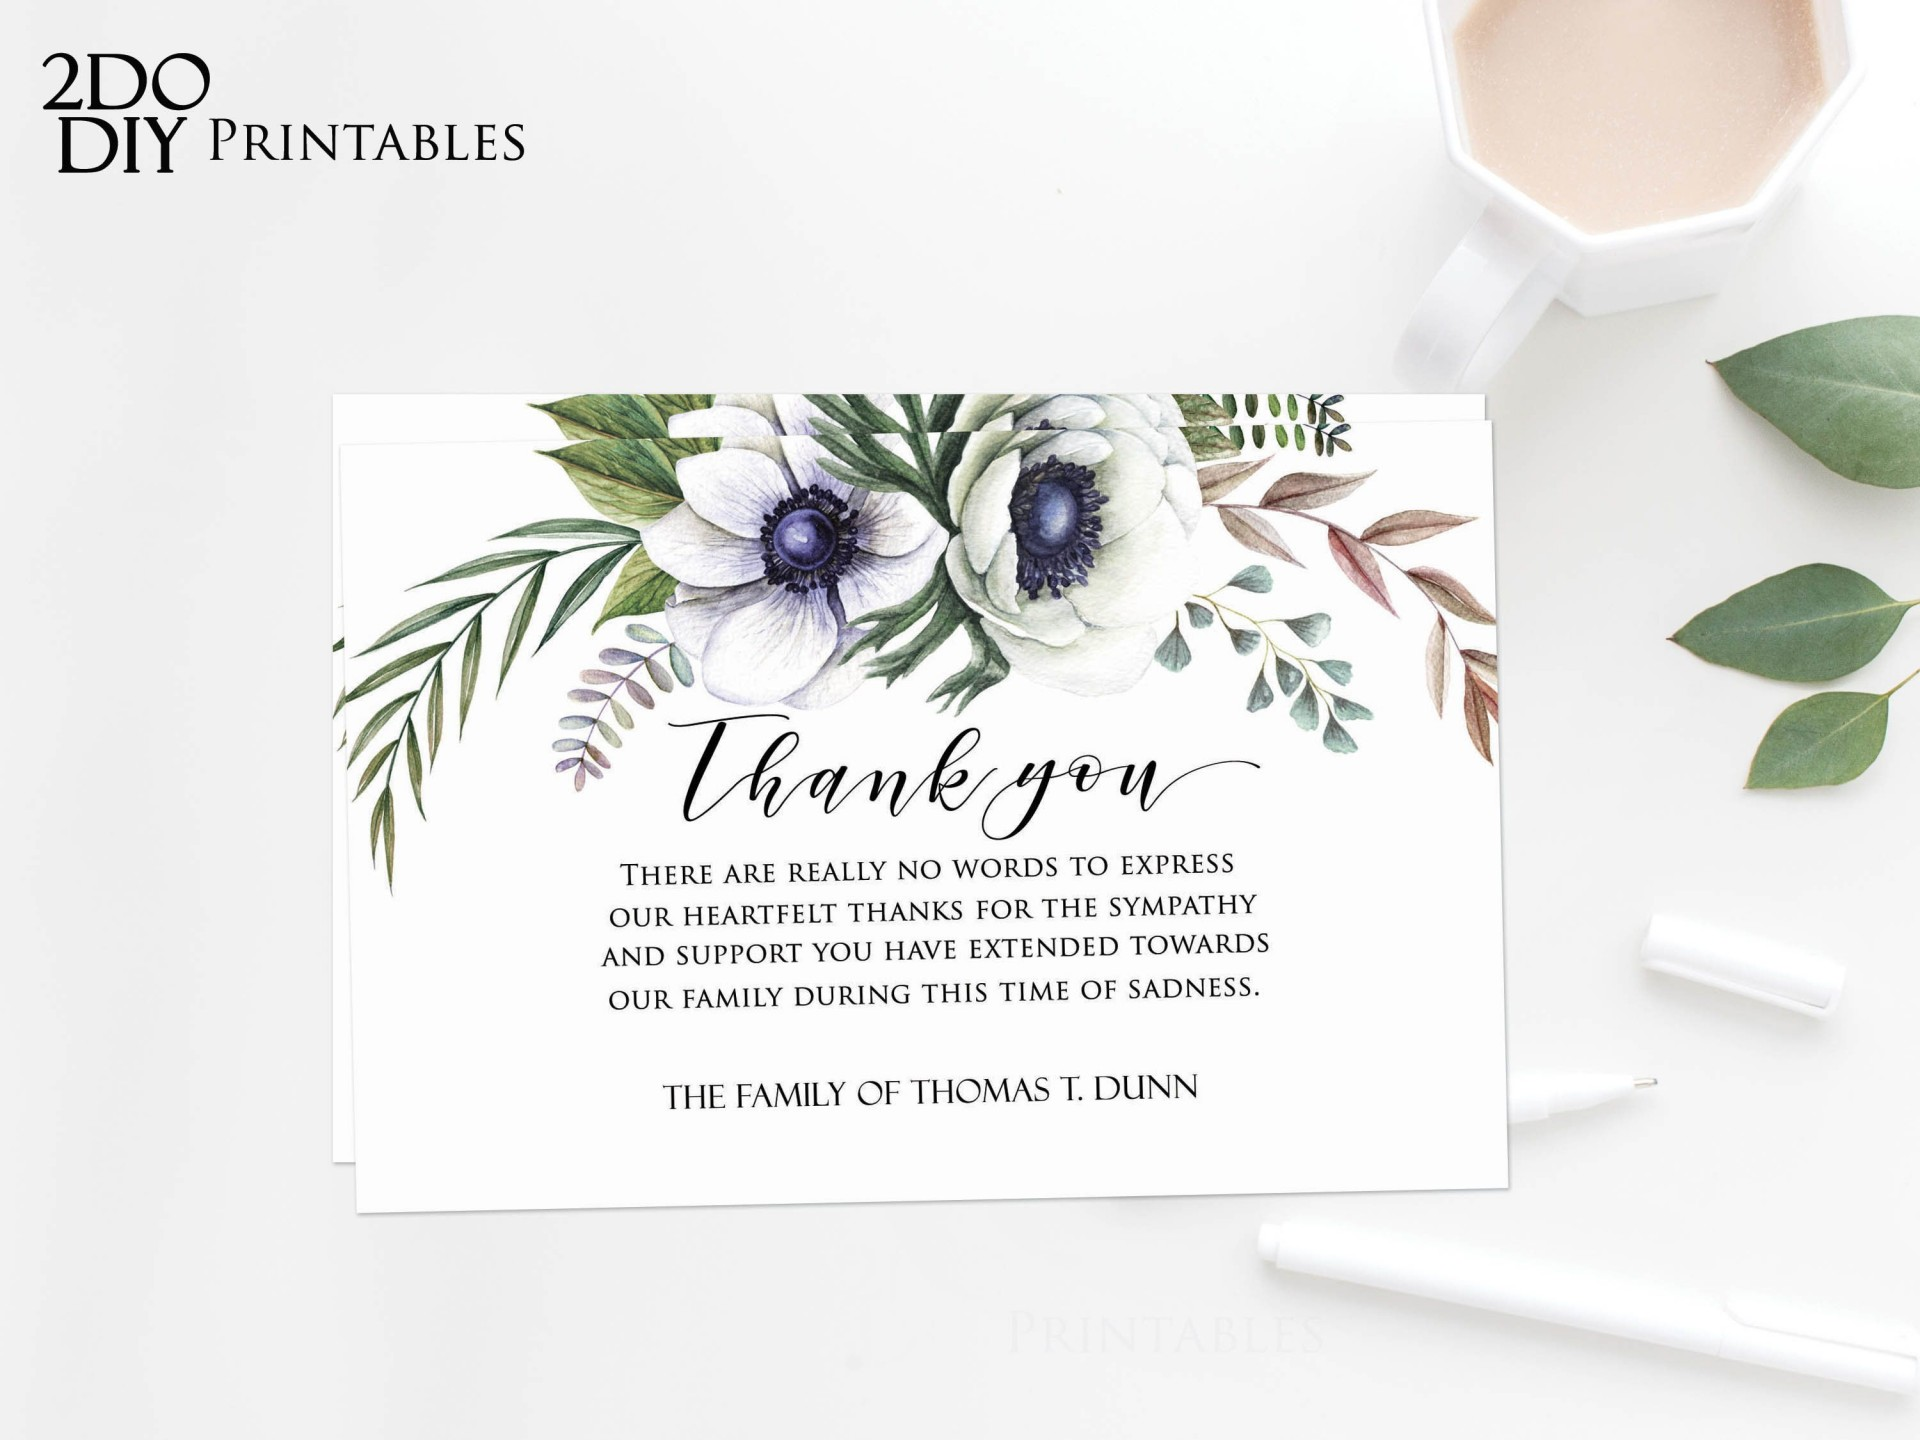 006 Archaicawful Thank You Note Template Microsoft Word Design  Card Free Funeral Letter1920